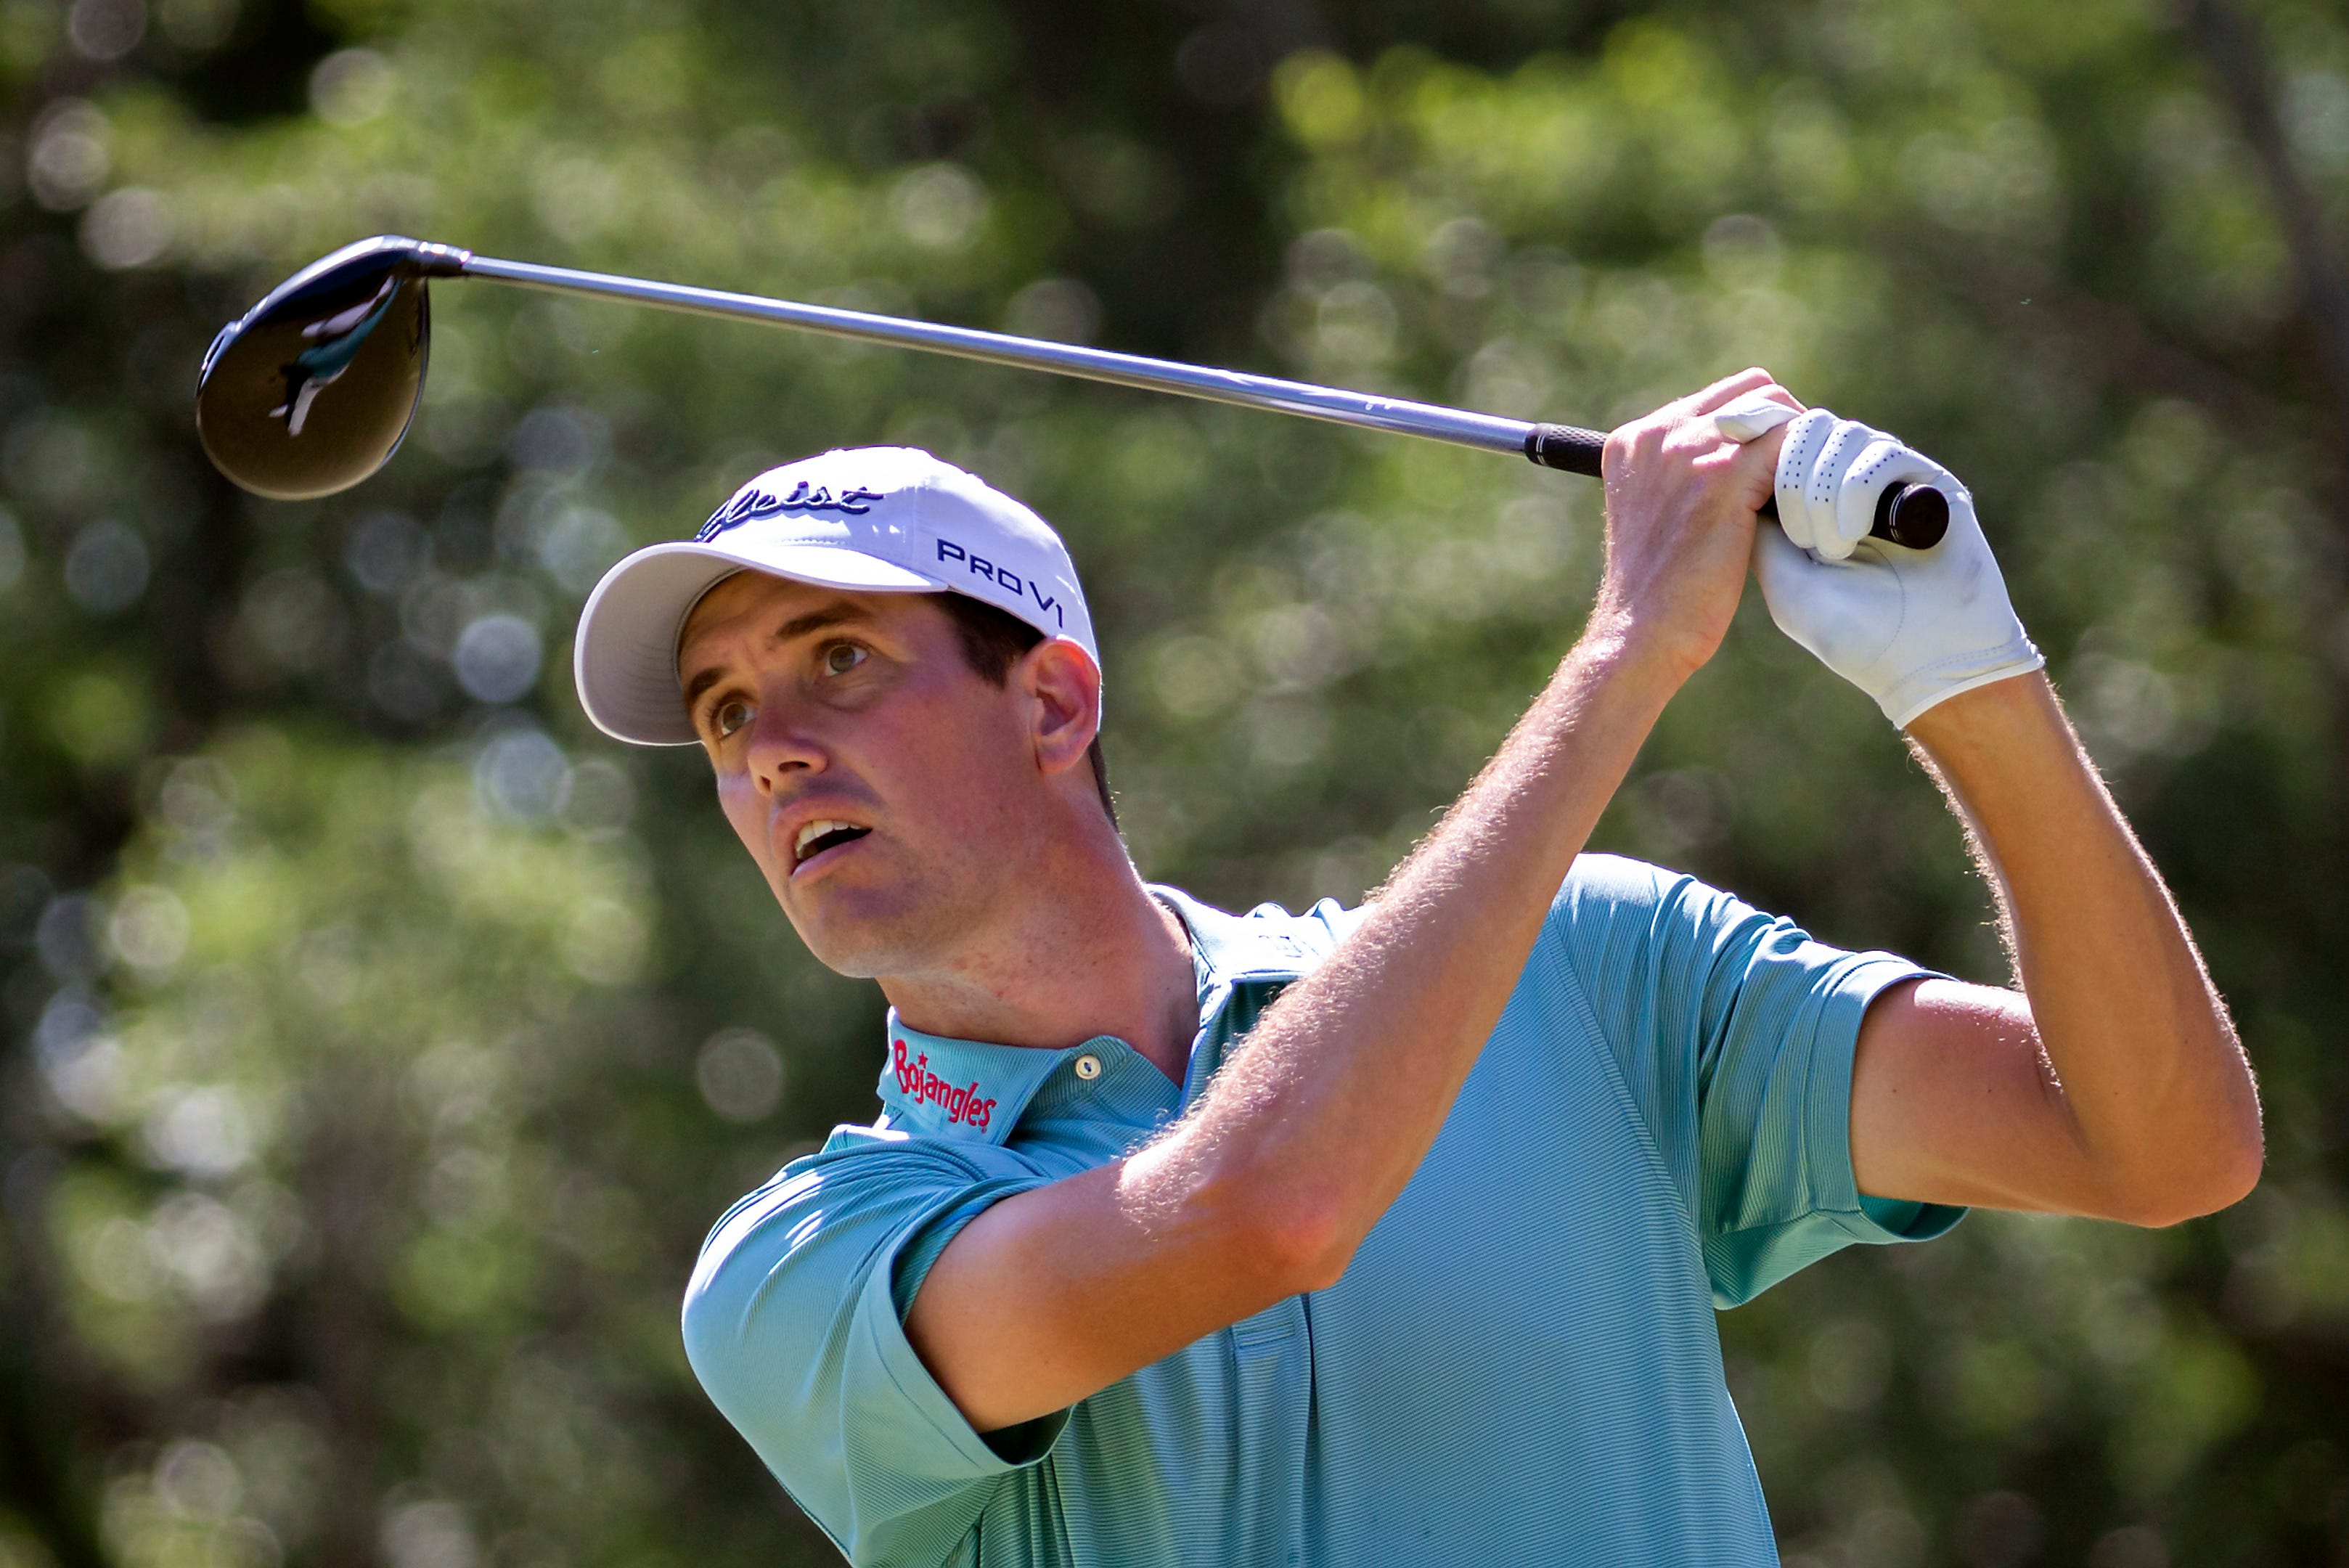 PGA Tour golfer Chesson Hadley of Georgia Tech is contending at Congaree